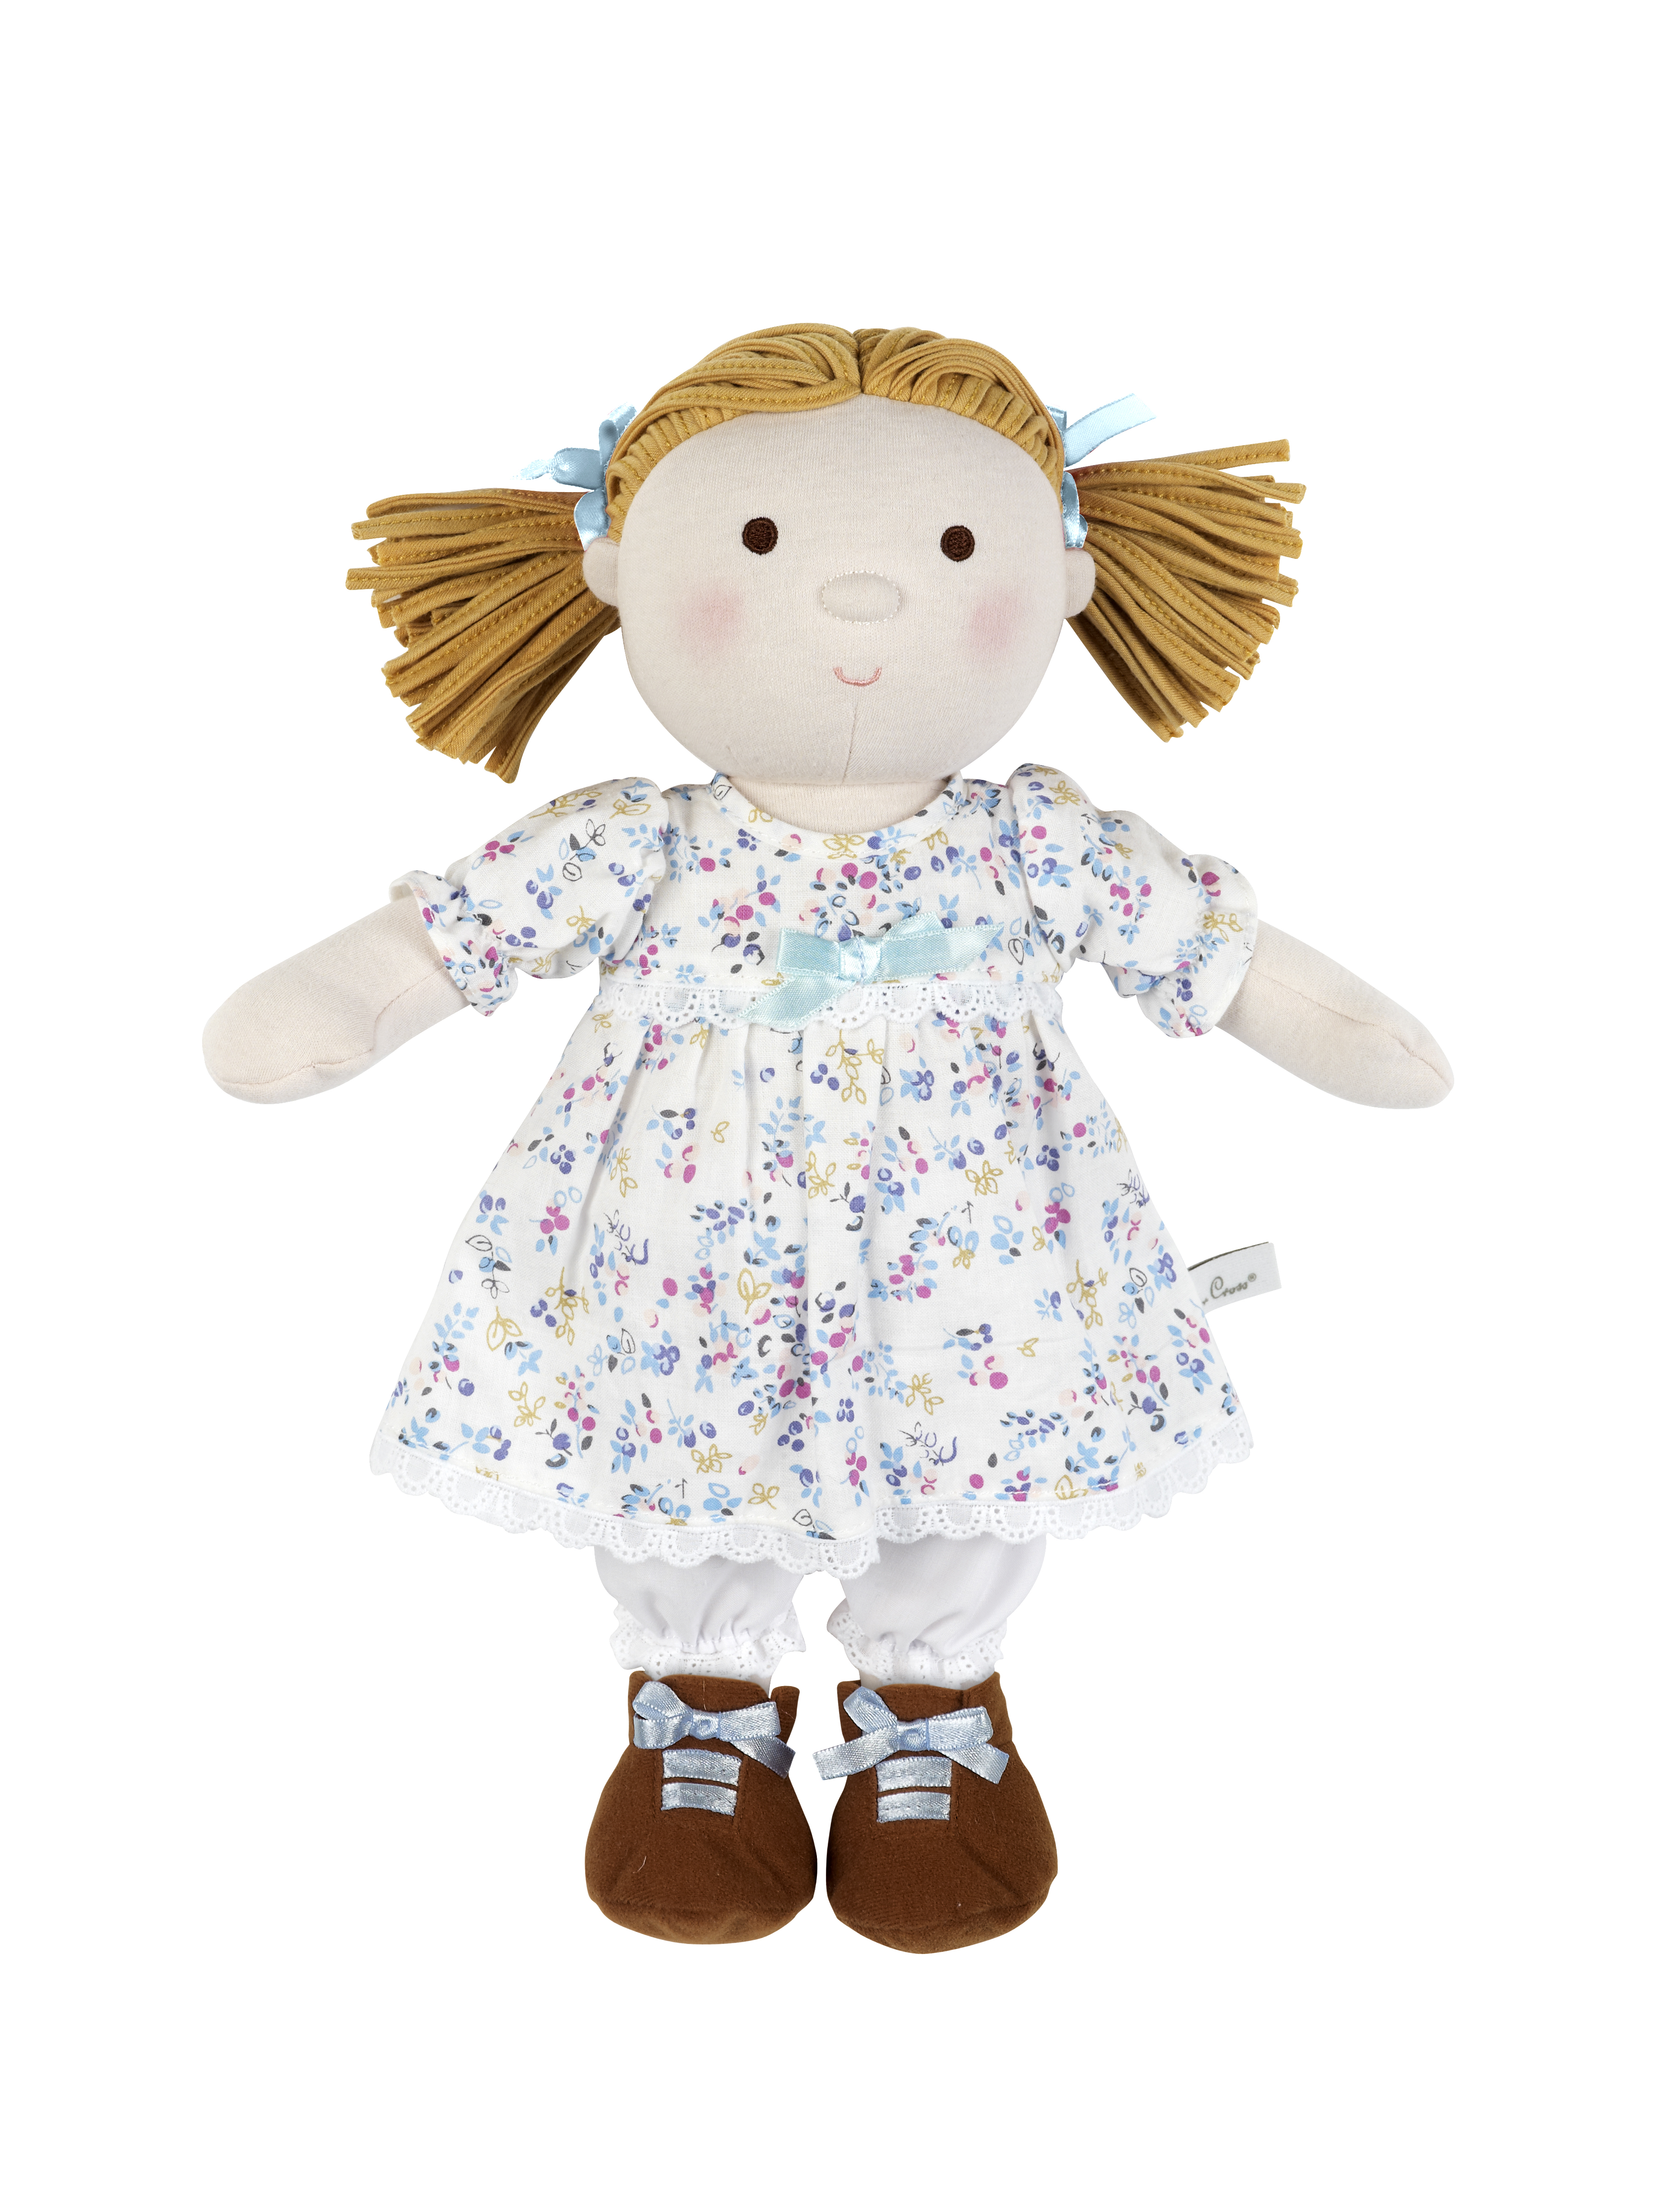 VICTORIA_DRESSING_UP_RAG_DOLL_2